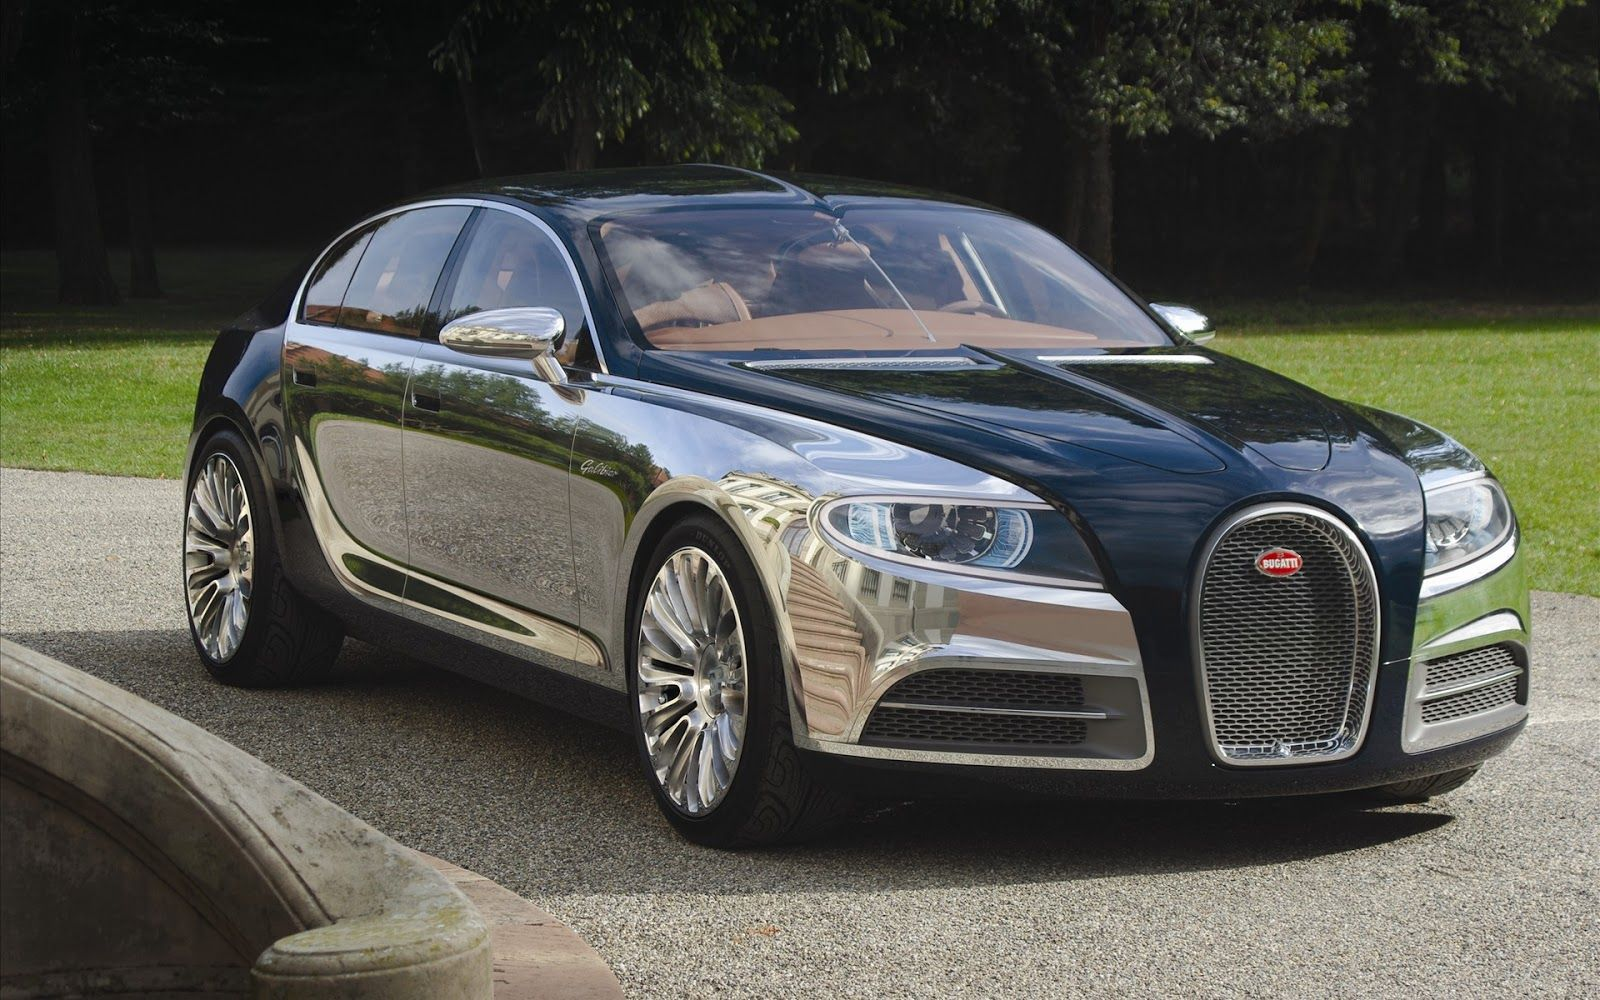 Bugatti 2014 Price | Places to Visit | Pinterest | Bugatti veyron ...